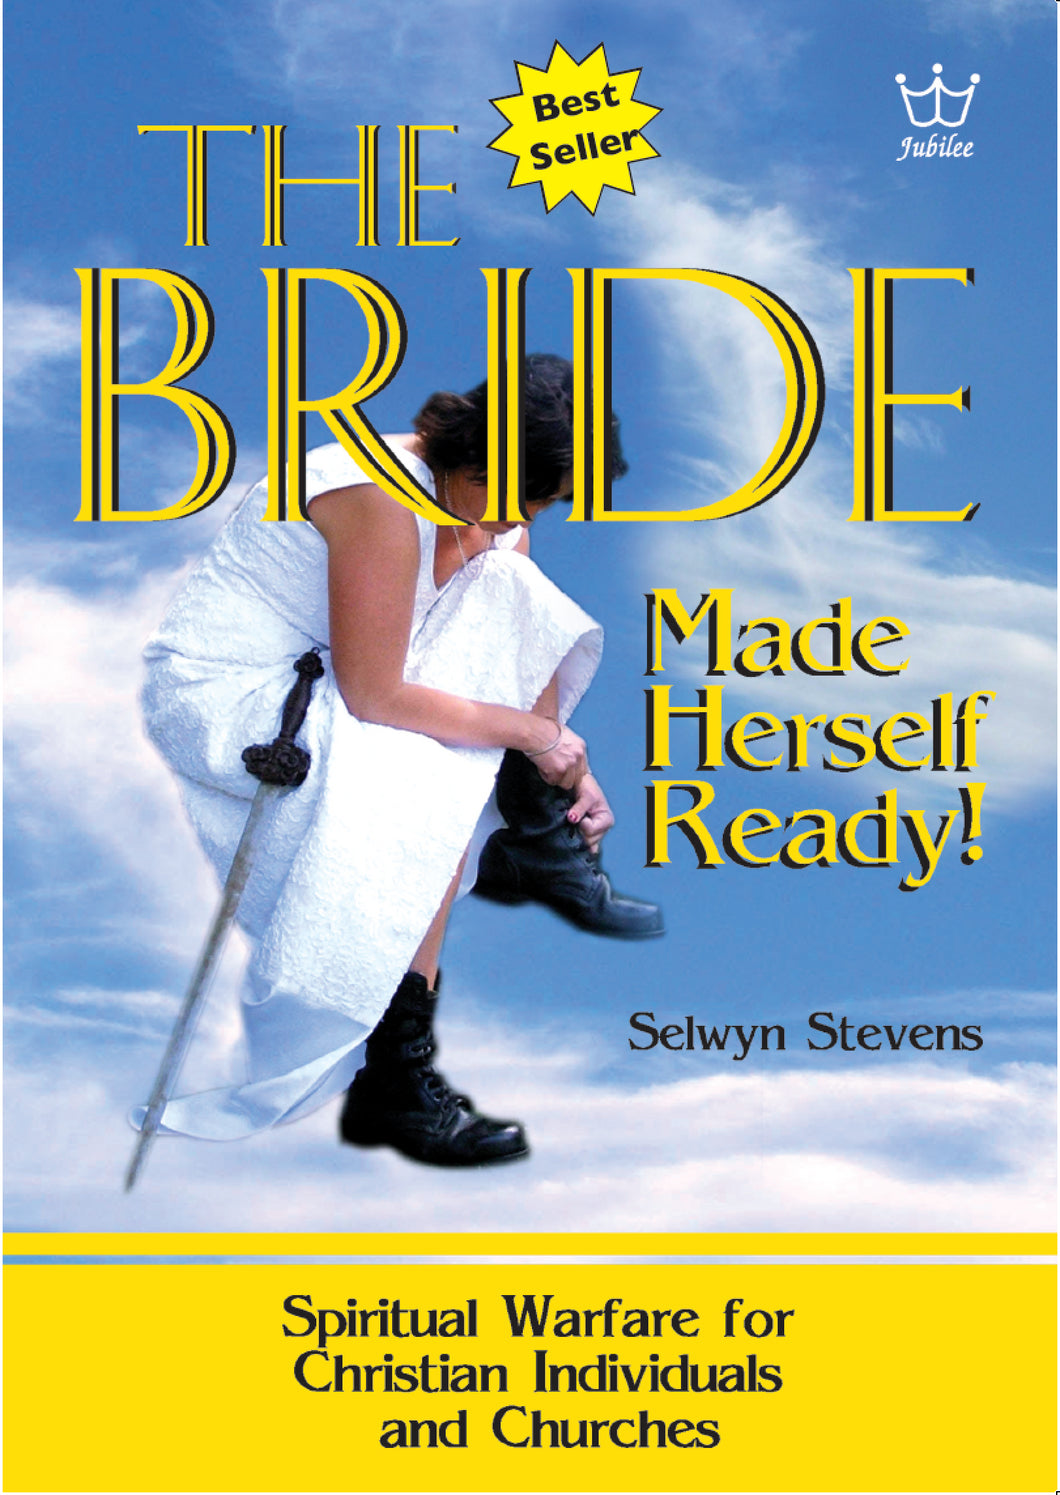 The Bride Made Herself Ready! book #BTBS